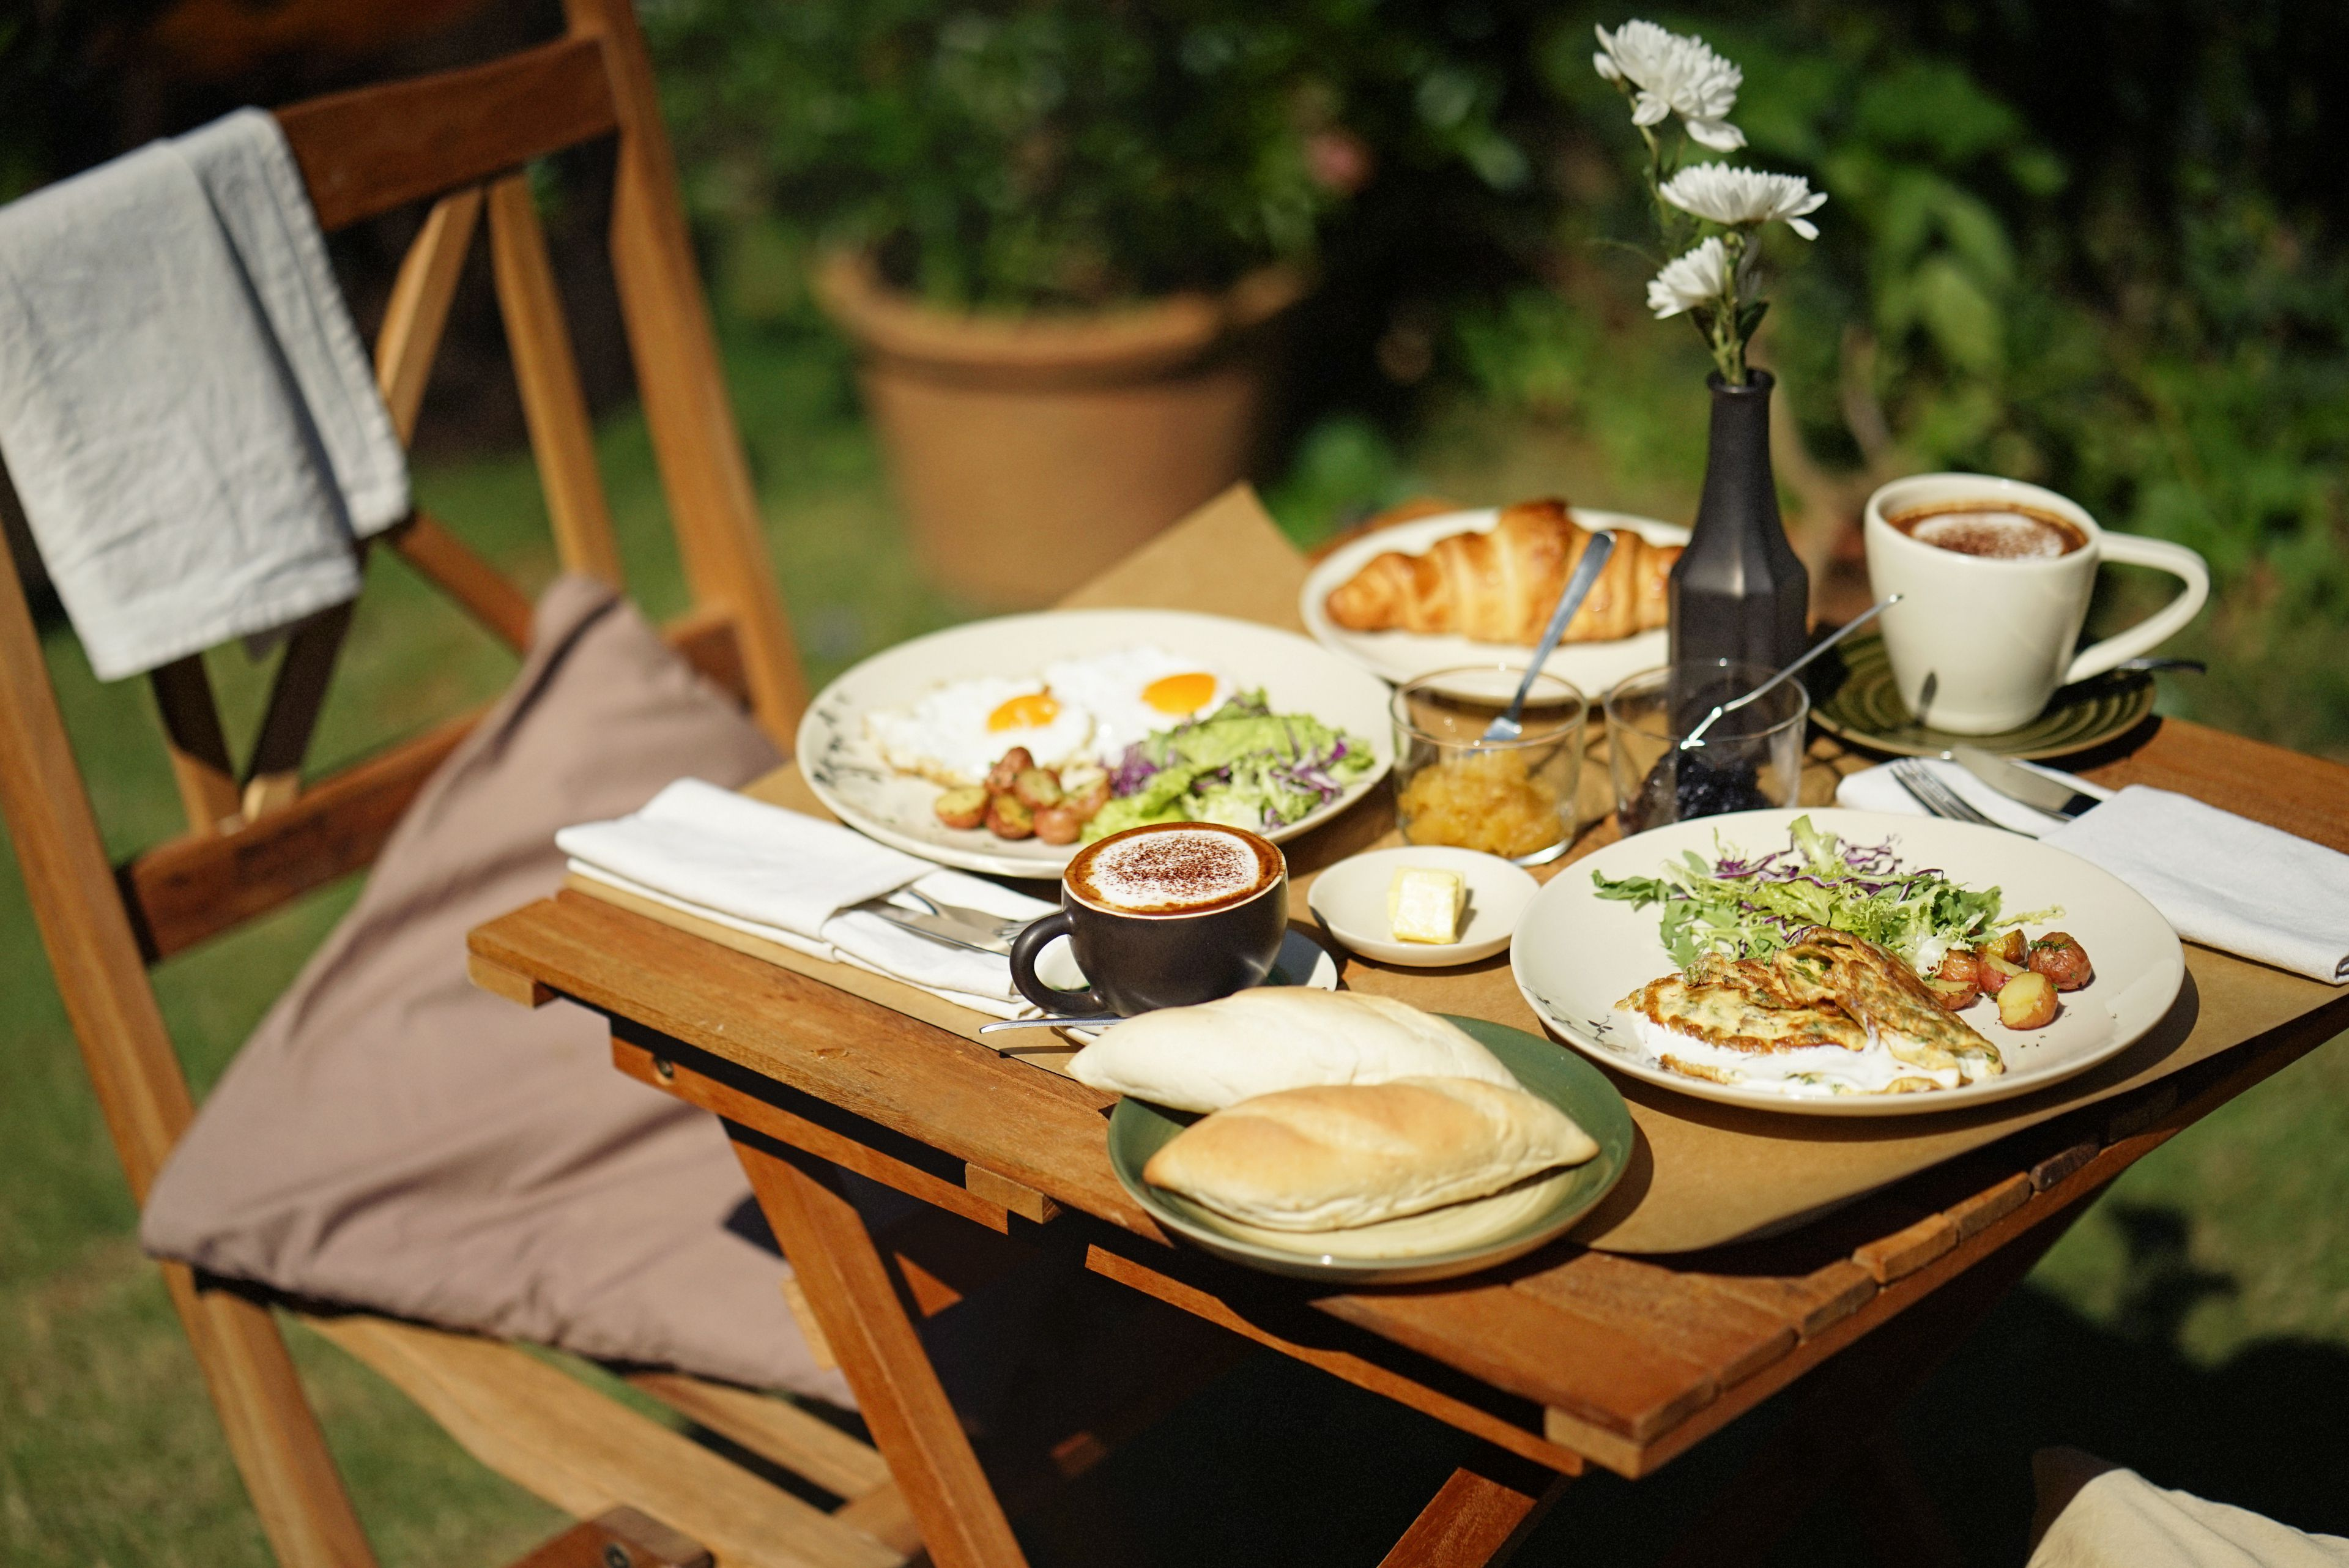 Breakfast and coffee in the garden